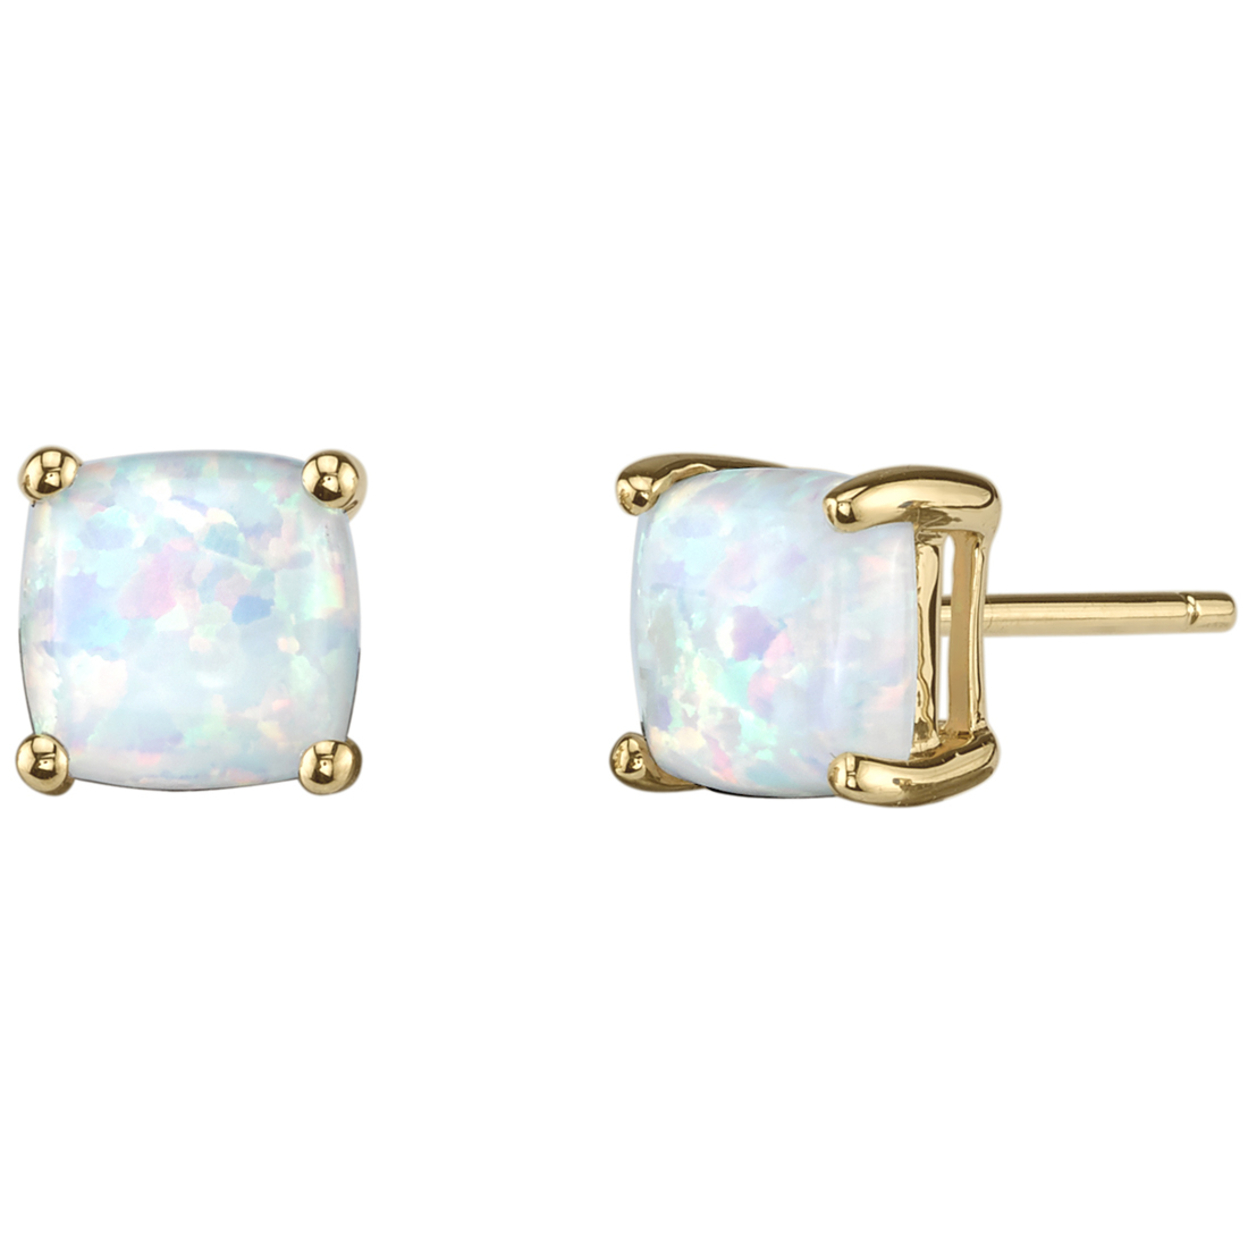 Oravo 14k Yellow Gold Cushion Cut Created Opal Stud Earrings